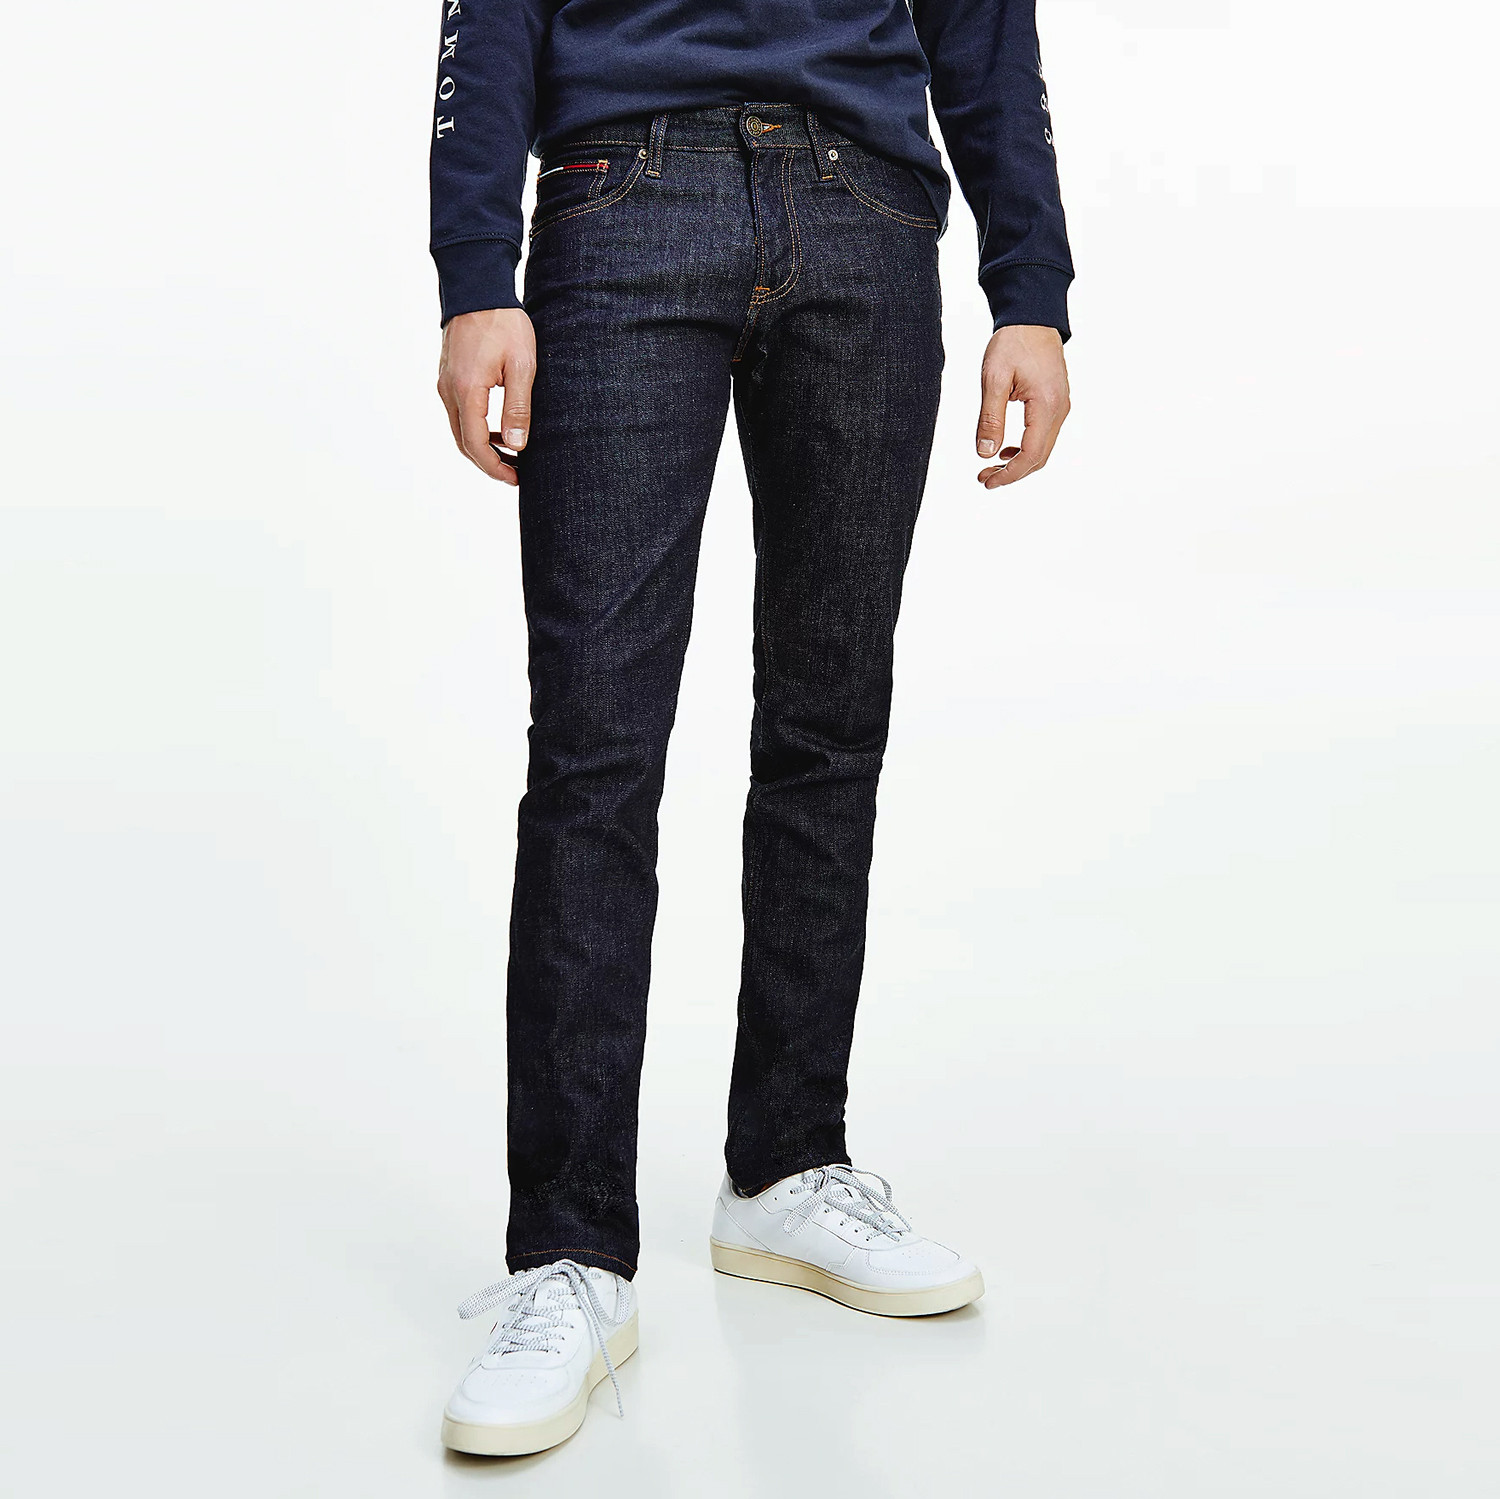 Tommy Jeans Ryan Relaxed Straight Ανδρικό Τζιν Παντελόνι (Μήκος 32L) (9000089969_22939)